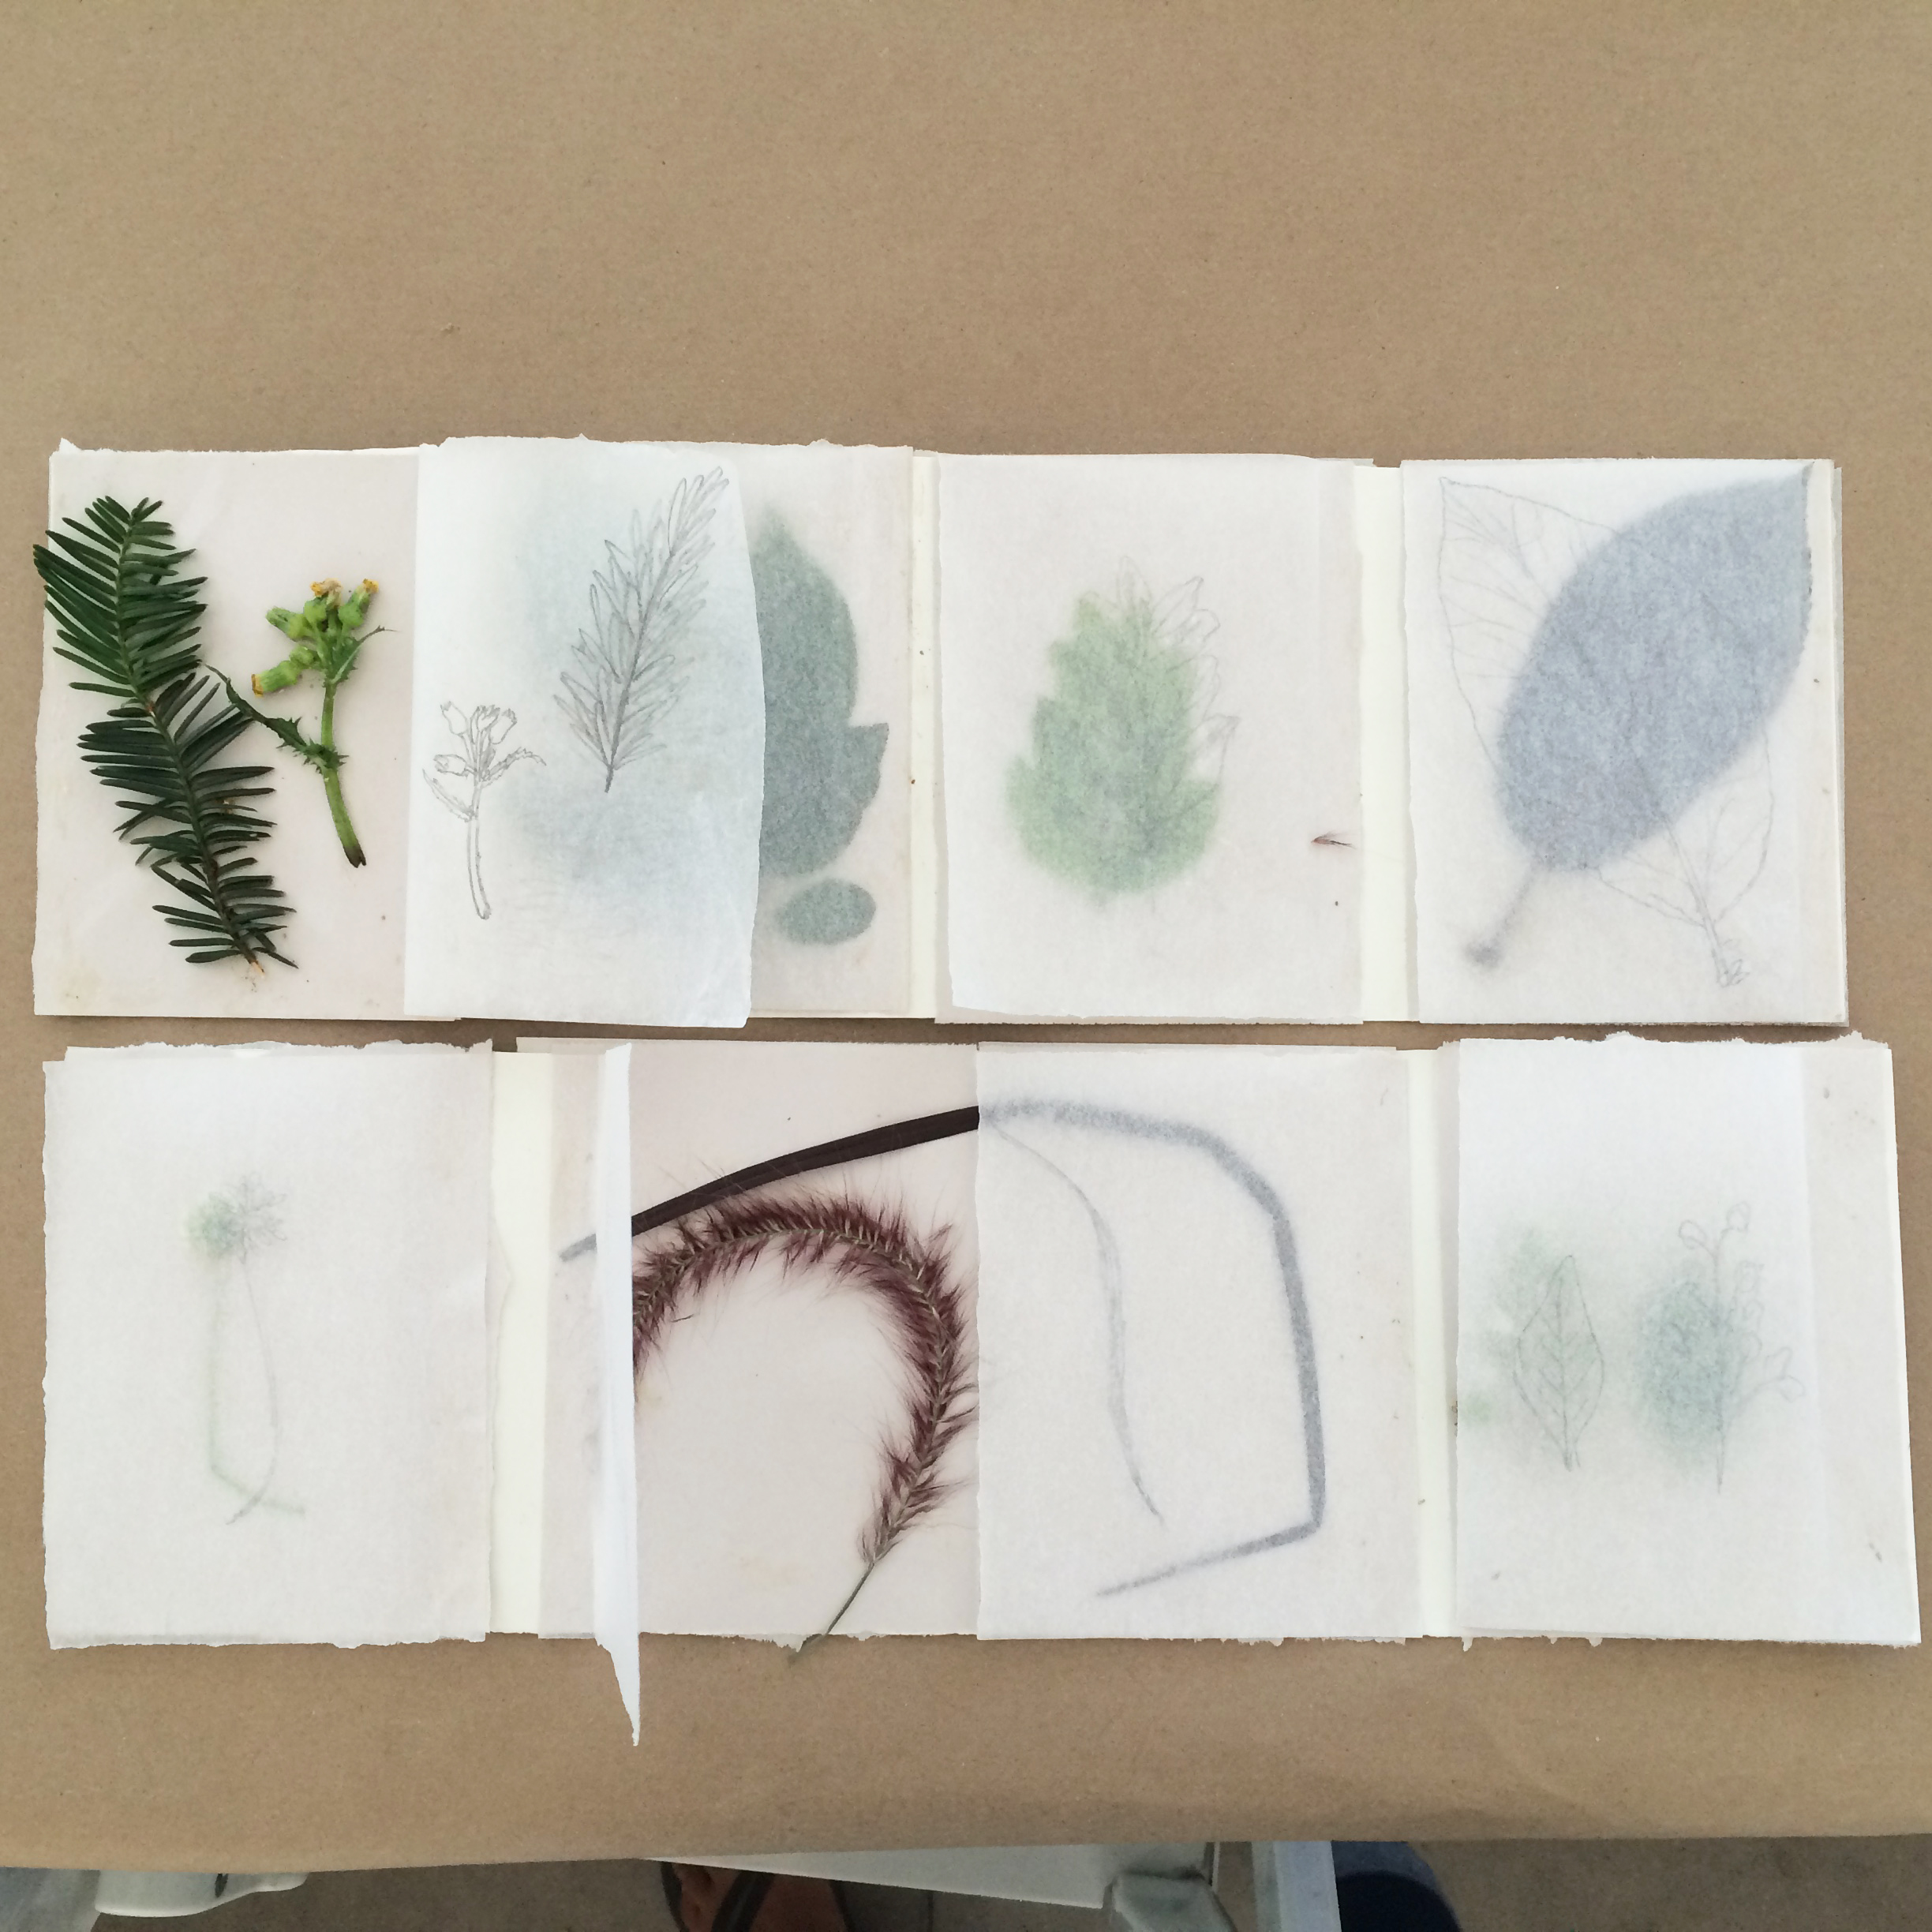 Nature-Collecting_Field-Journals_Samia_02.JPG